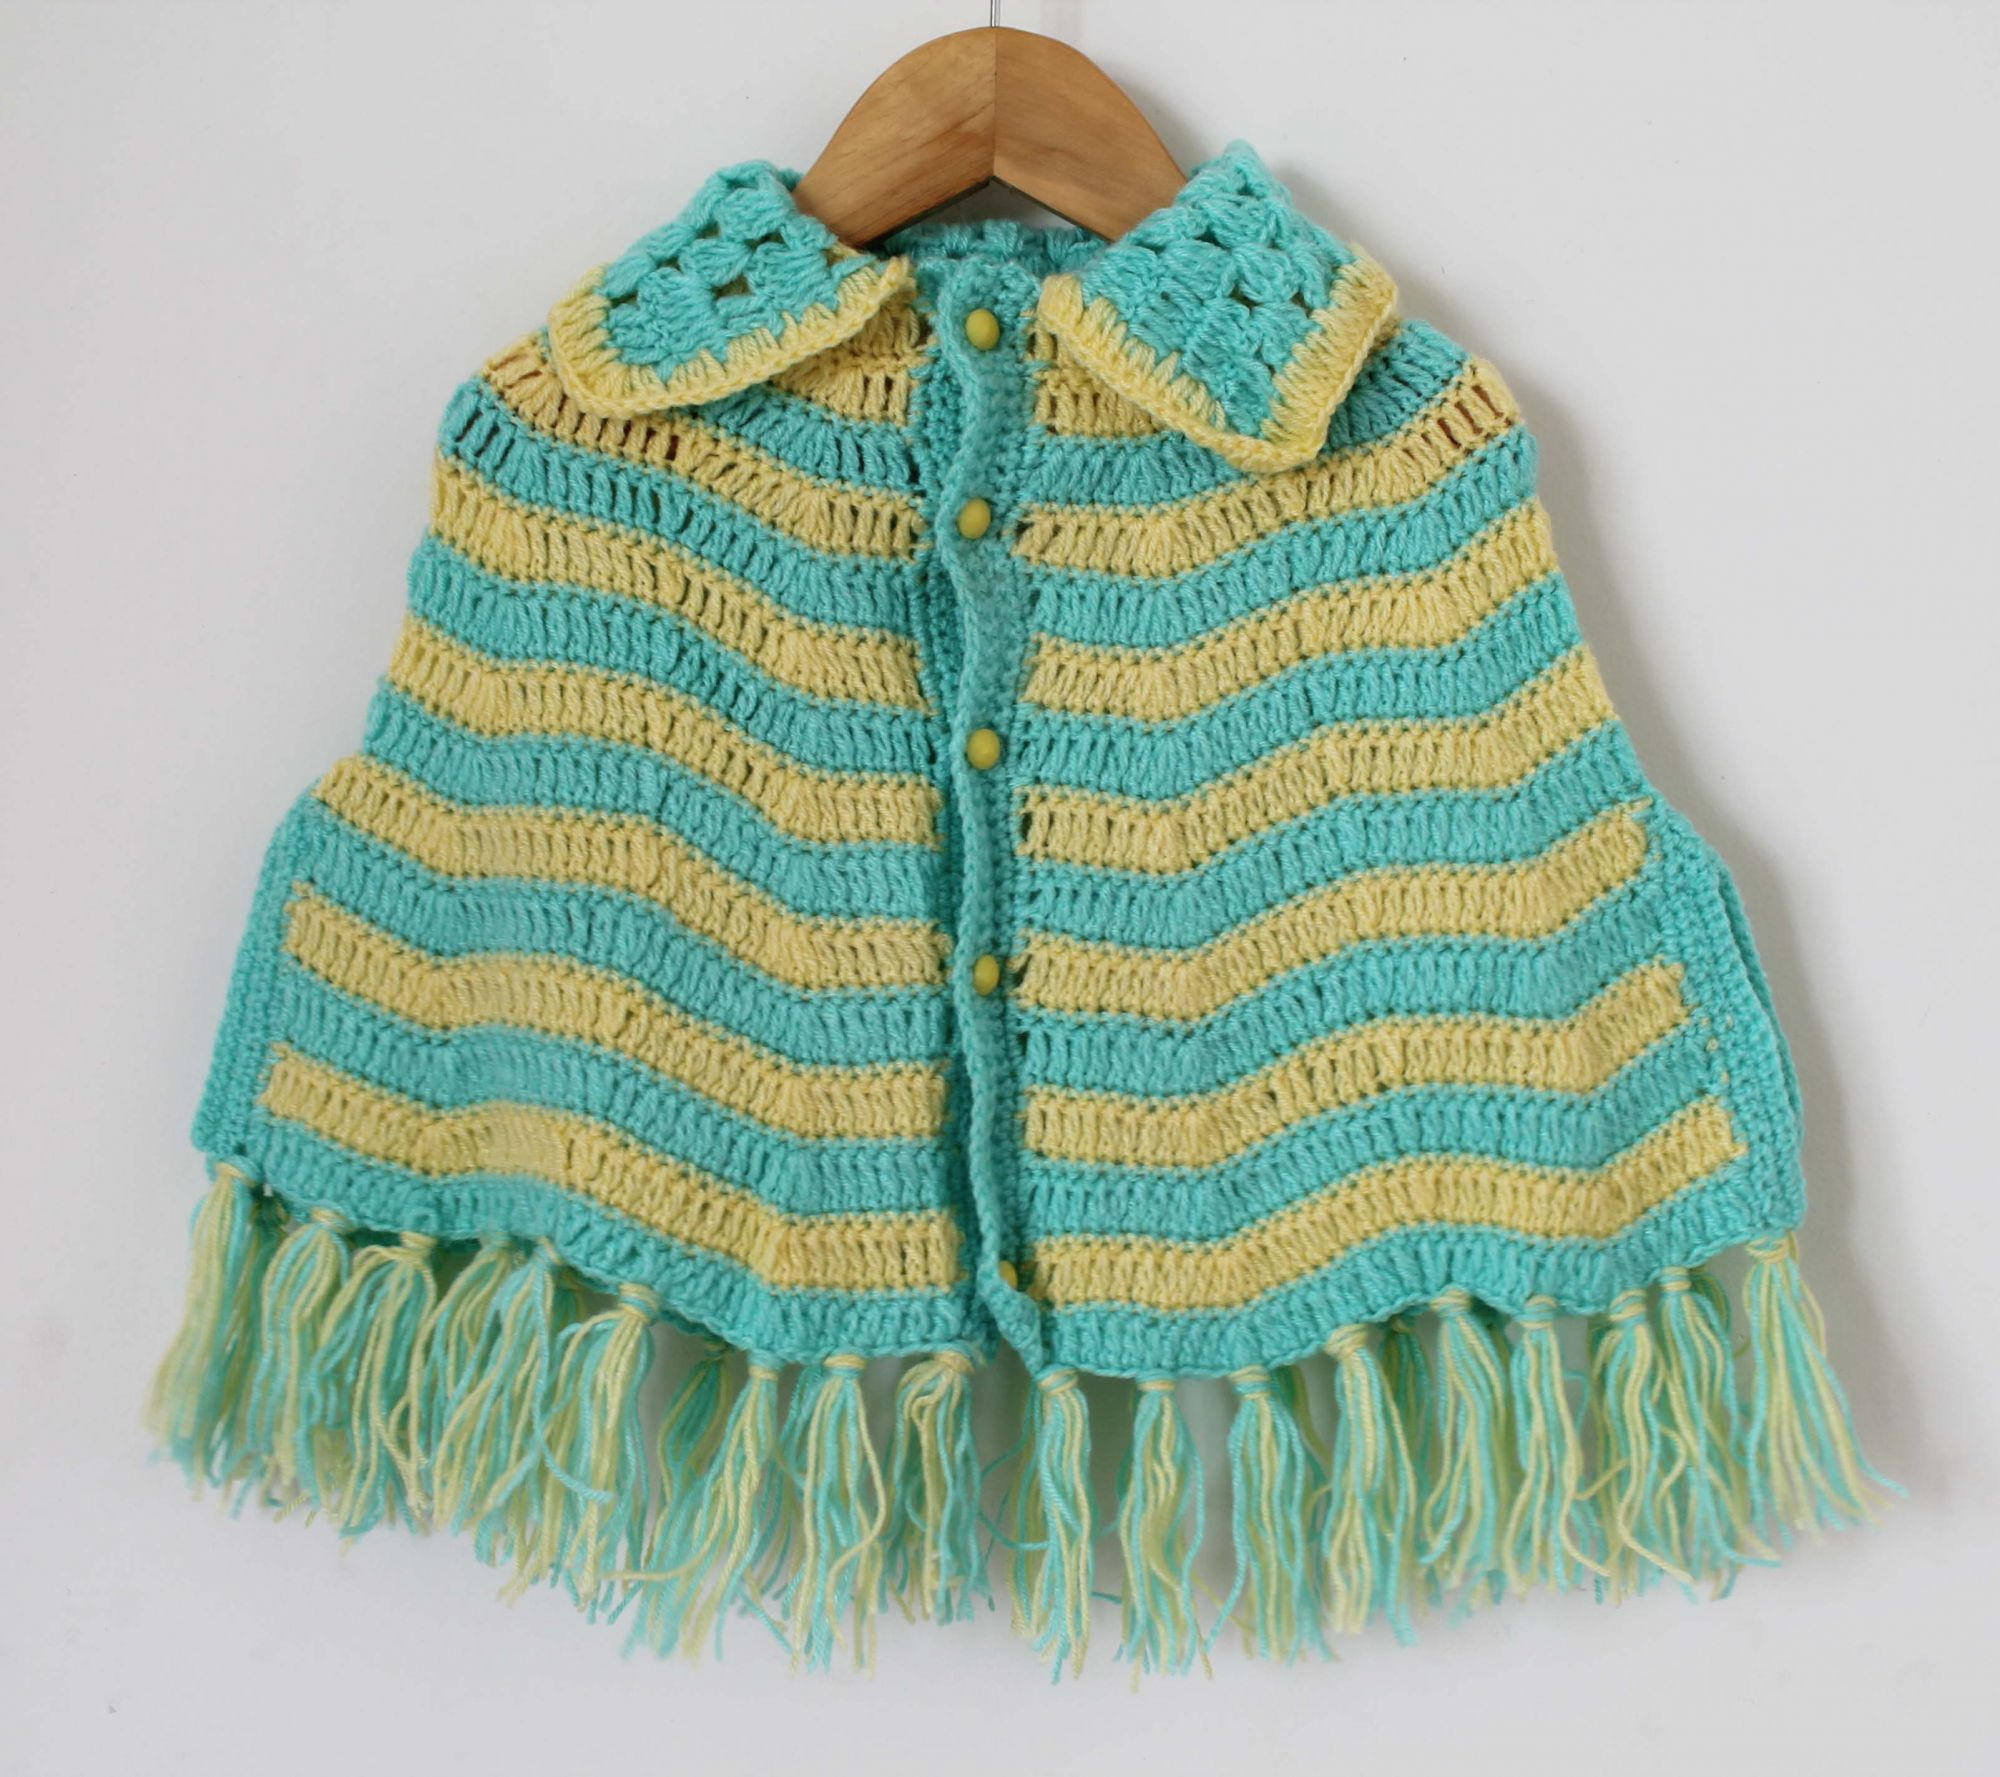 Woonie Handmade Green and Yellow Cape with Collar Detail for Infants